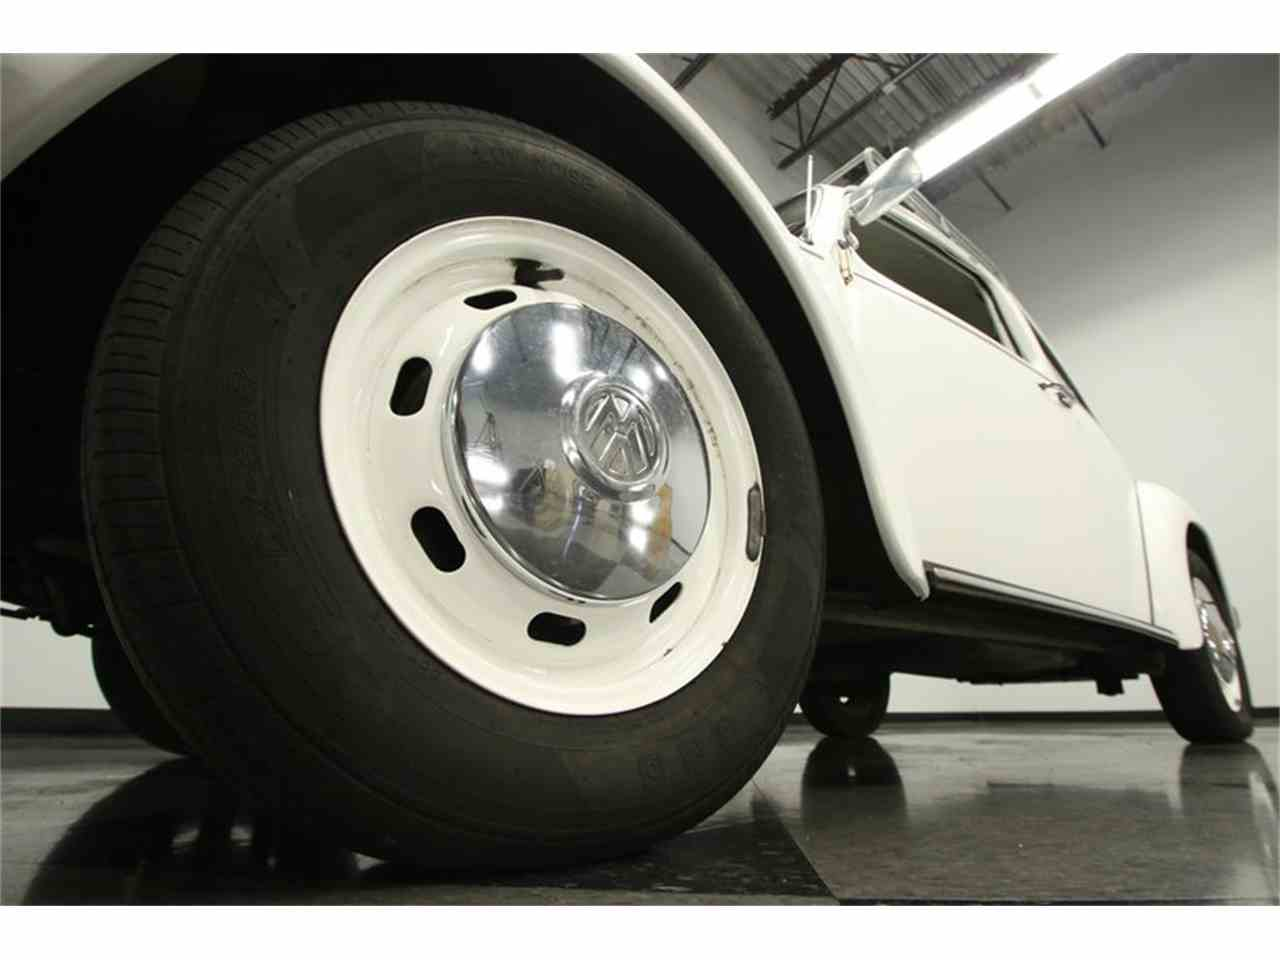 Large Picture of '71 Volkswagen Super Beetle located in Lutz Florida - $9,995.00 Offered by Streetside Classics - Tampa - MF74